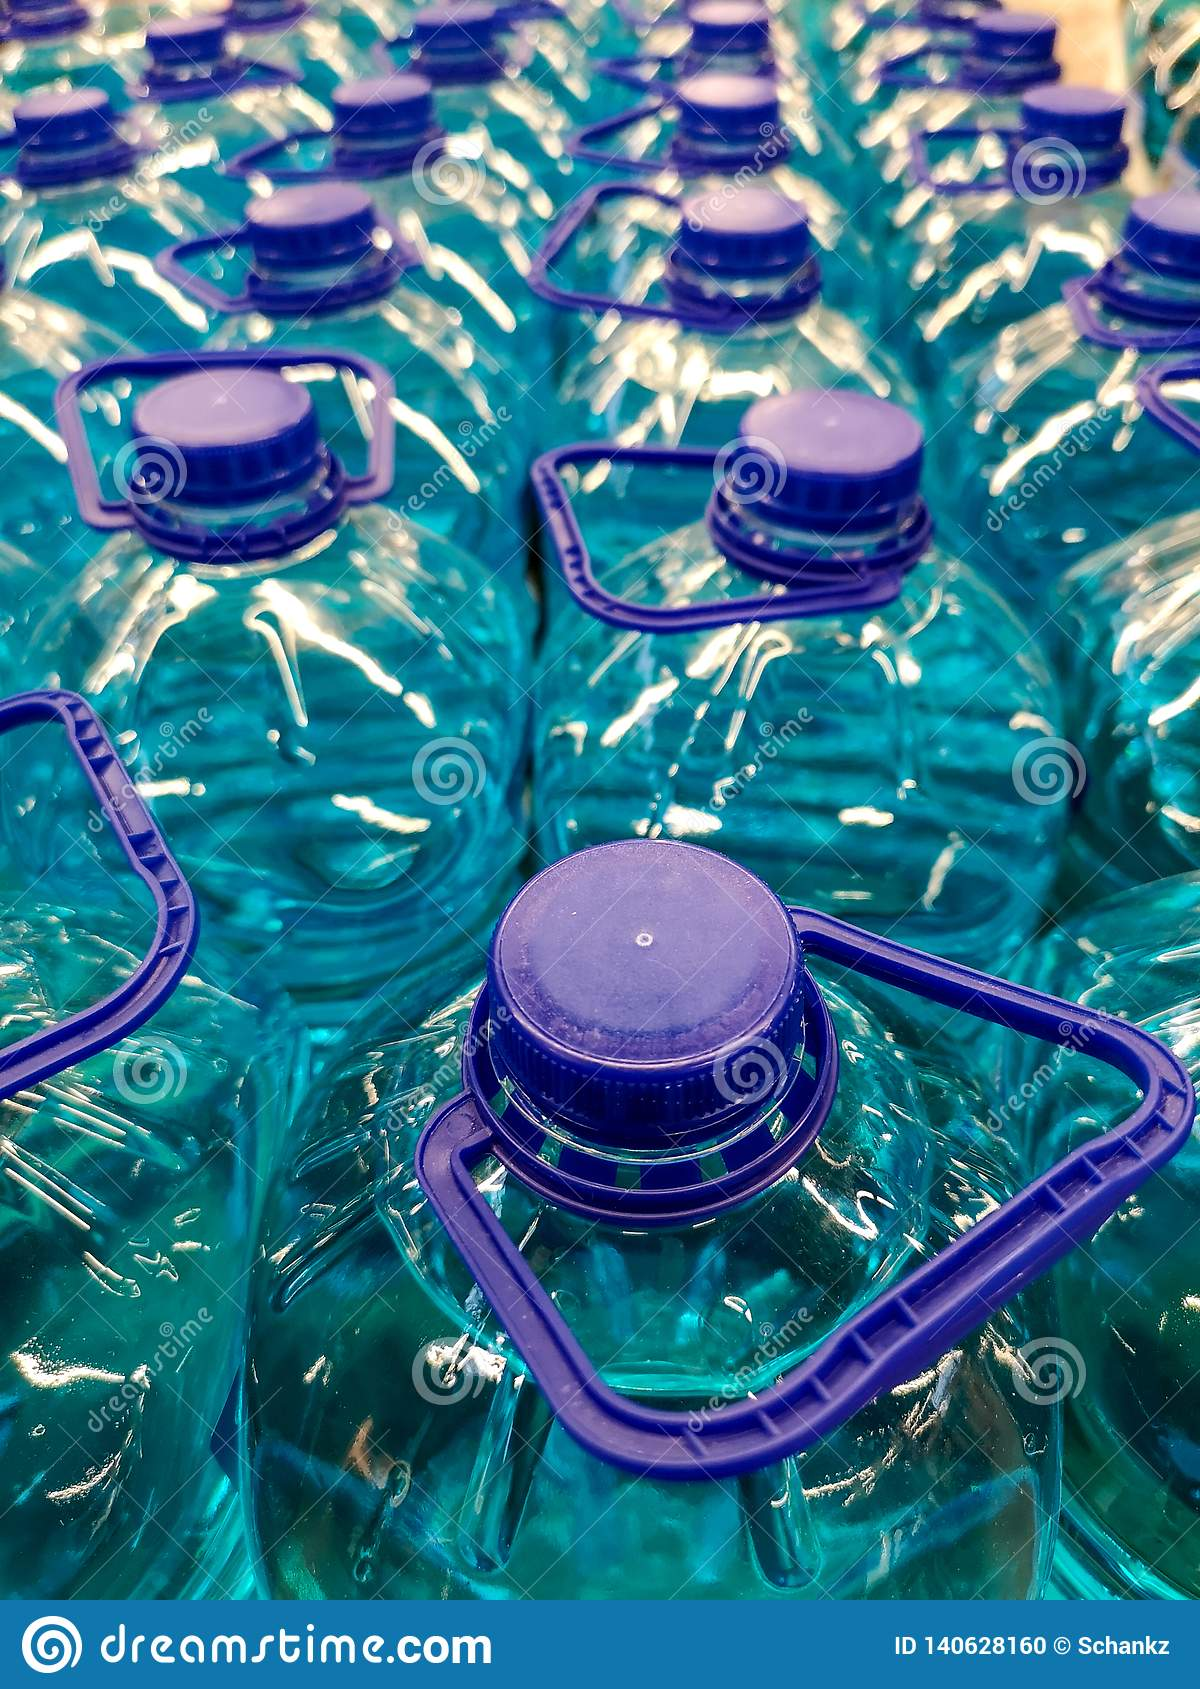 Blue liquid in plastic bottles as a background